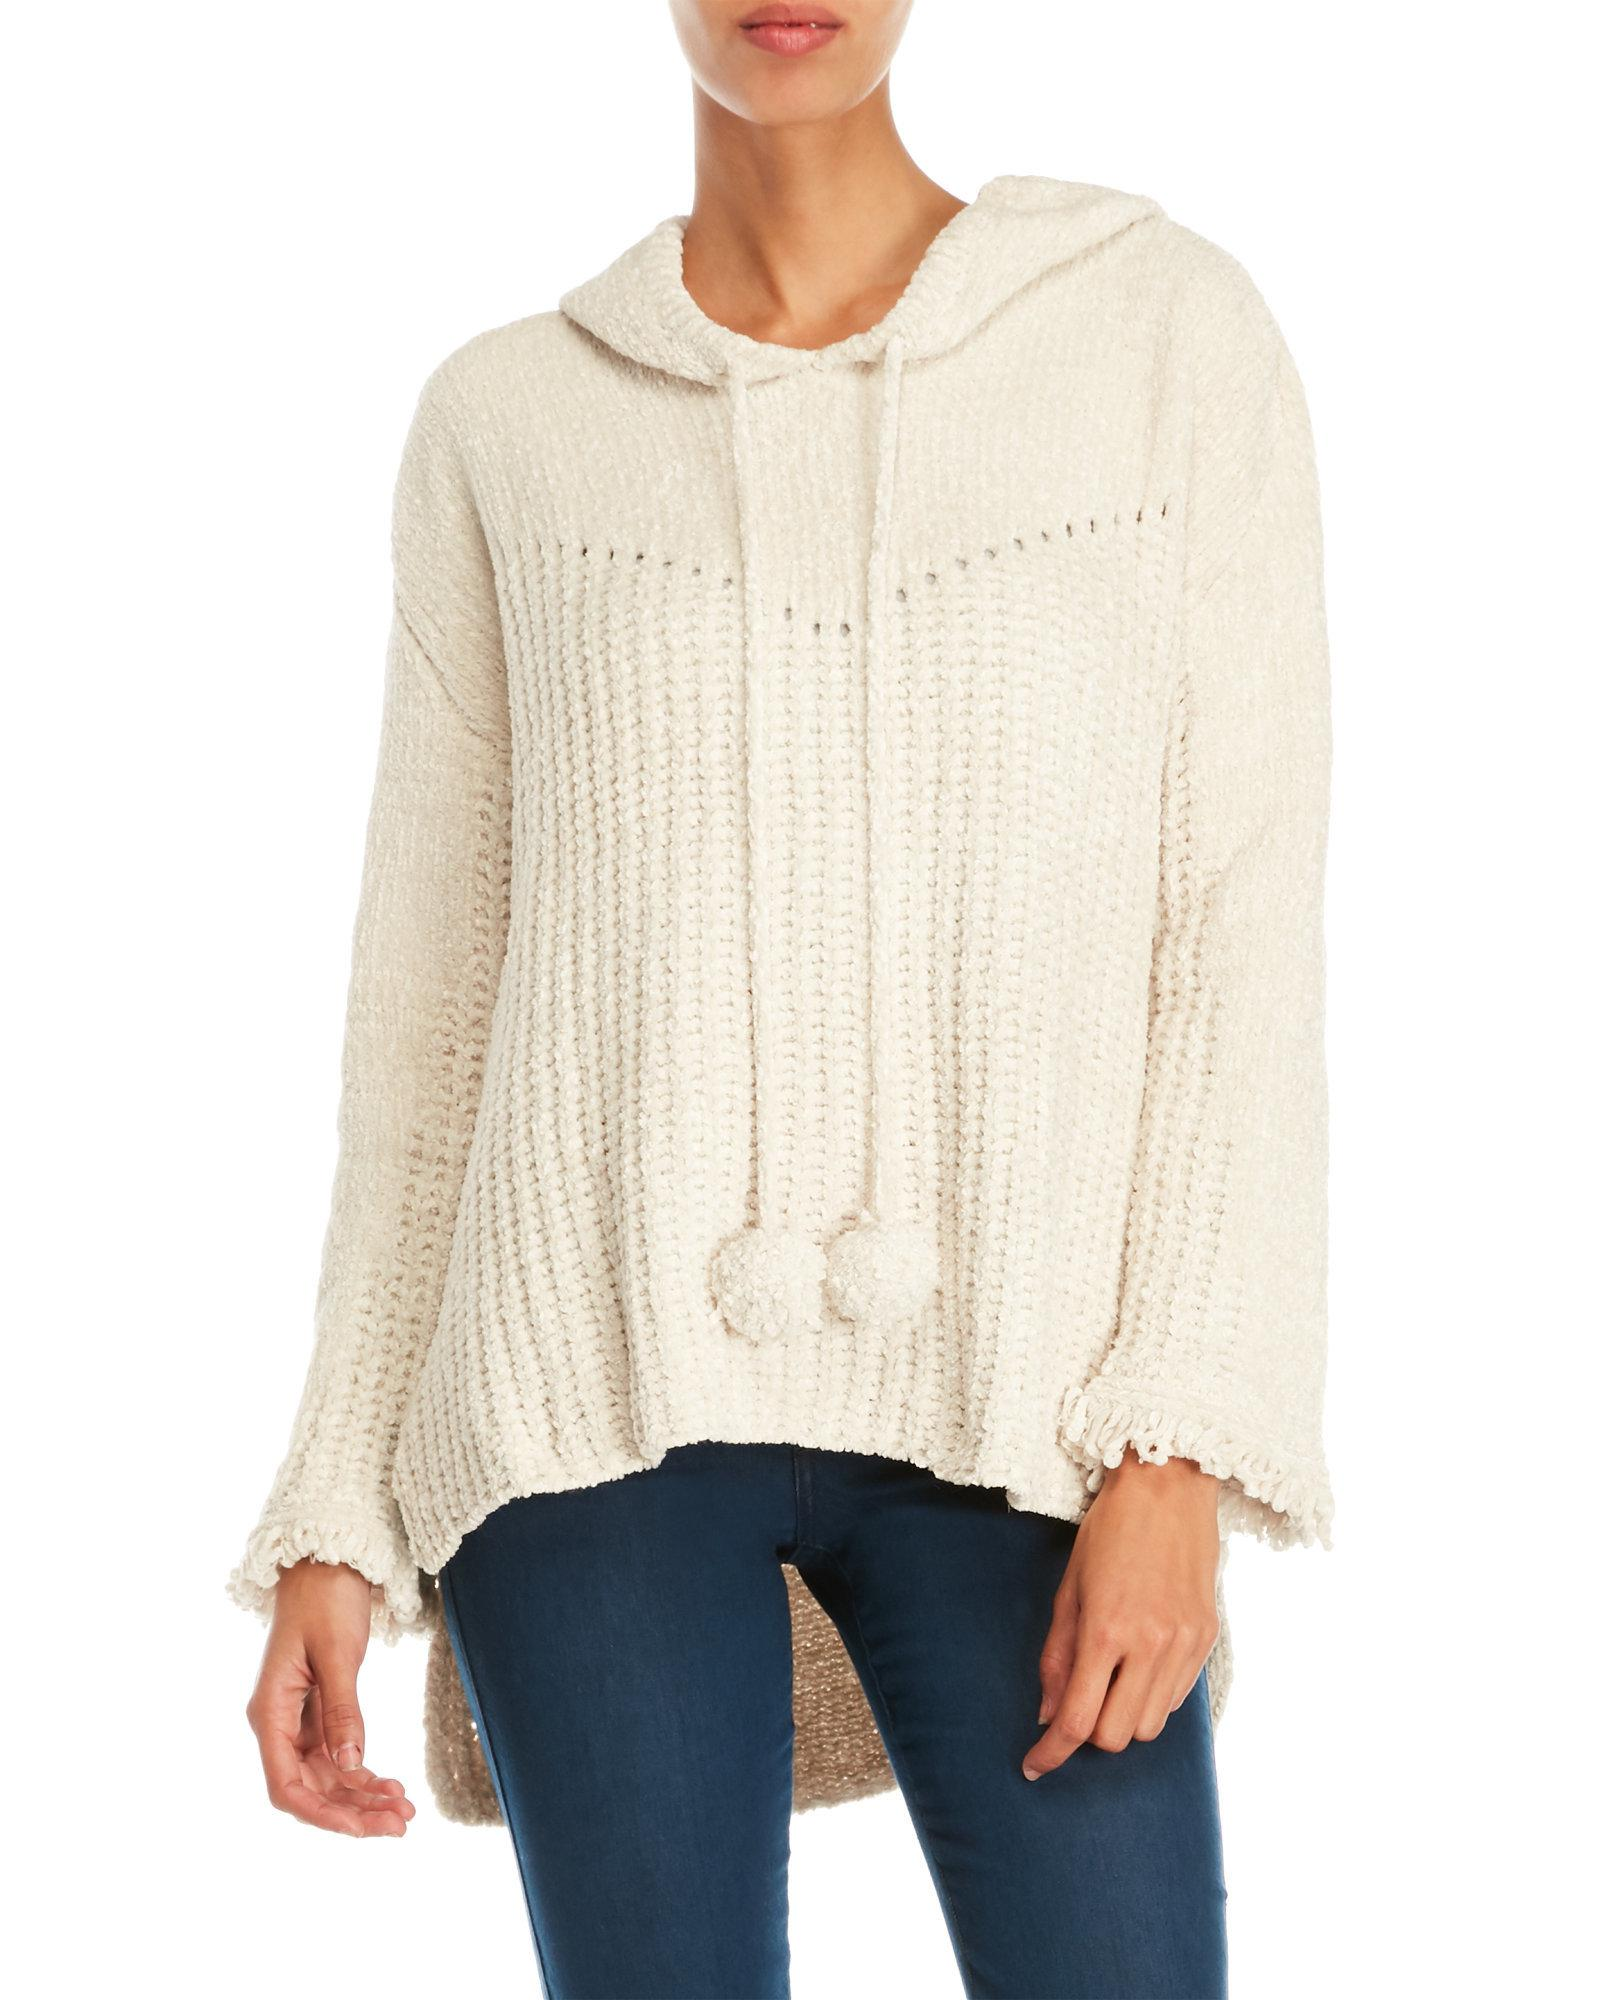 Pol Pom Pom Hooded Sweater in Natural | Lyst